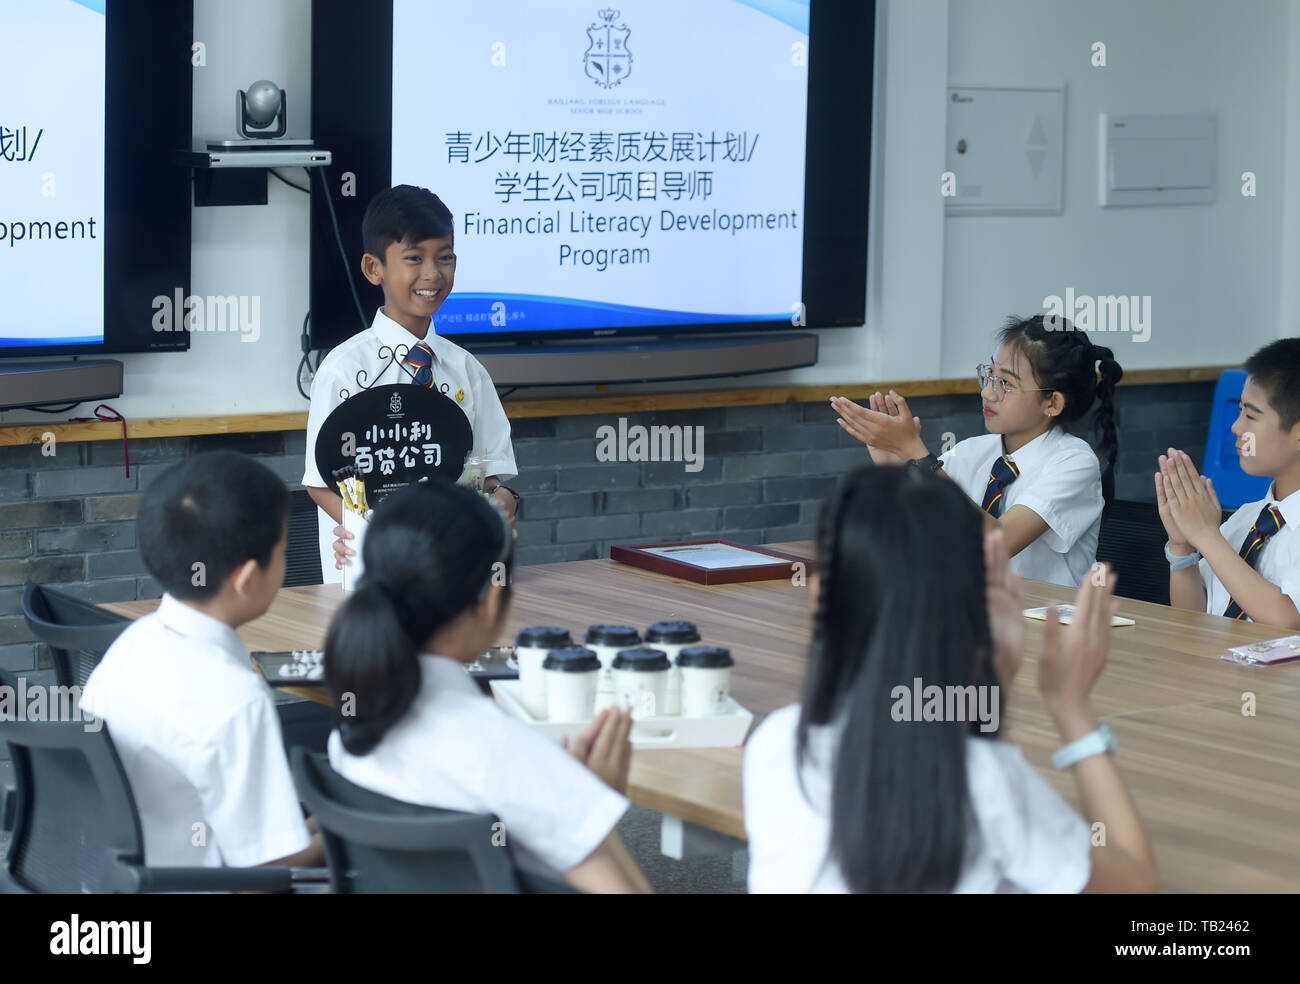 190529 Zhuji May 29 2019 Xinhua Thuch Salik Shares His Commercial Experience With Classmates